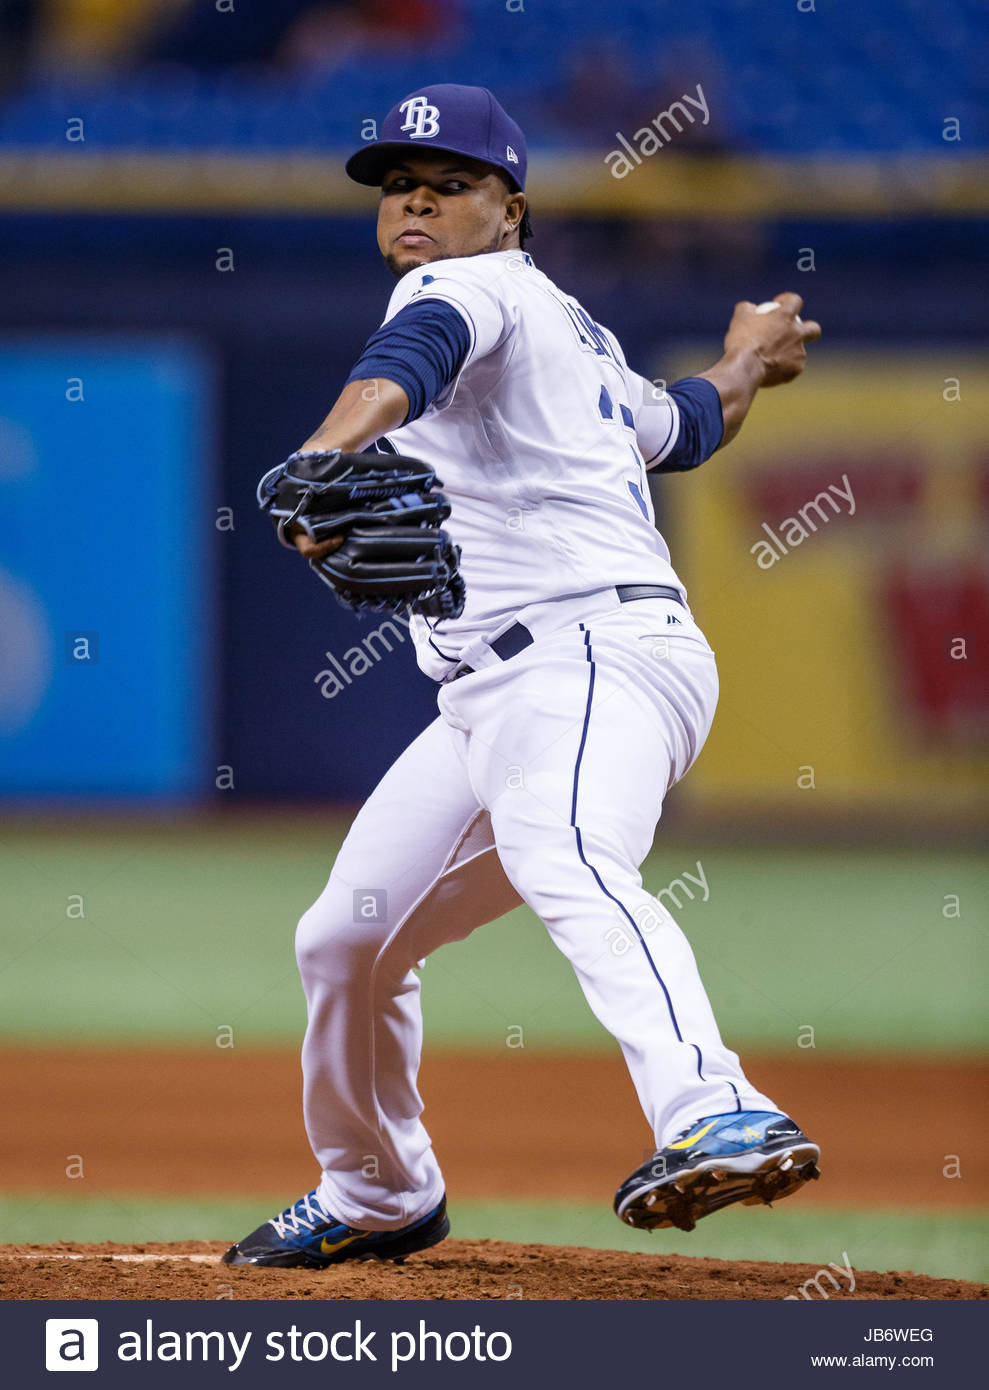 june-08-2017-tampa-bay-rays-relief-pitcher-alex-colome-37-comes-into-JB6WEG